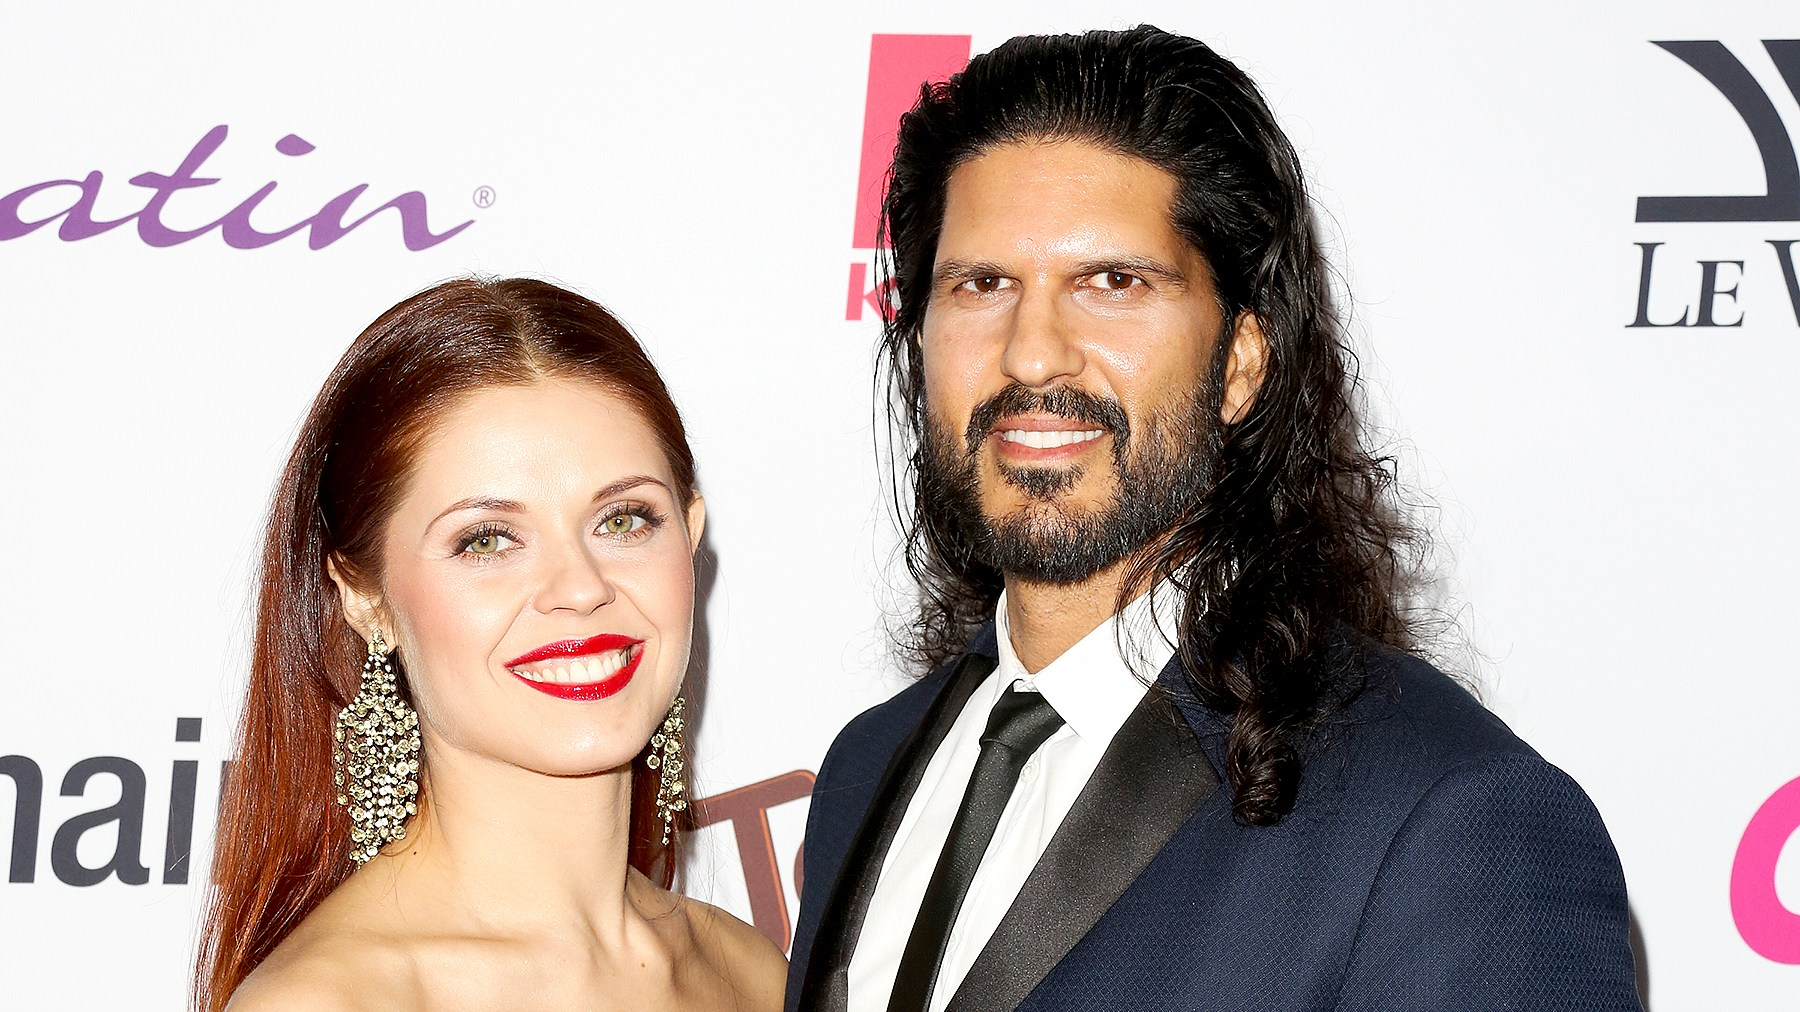 Anna Trebunskaya and Nevin Millan (R) attend OK! Magazine's annual pre-Oscar event at Nightingale Plaza on February 22, 2017 in Los Angeles, California.